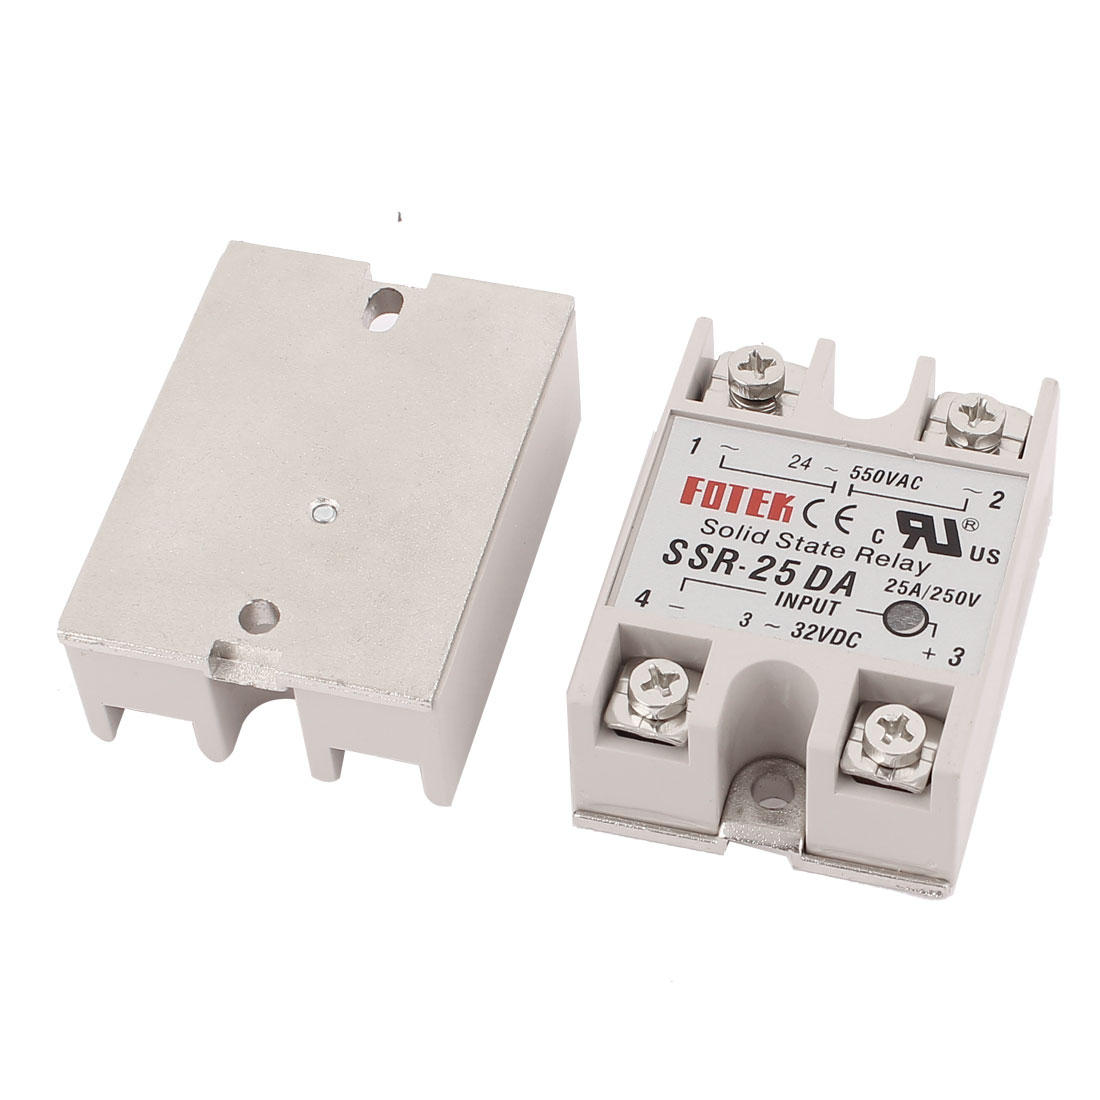 SSR-25DA DC 3-32V 25A Input Single Phase Solid State Relay 2Pcs